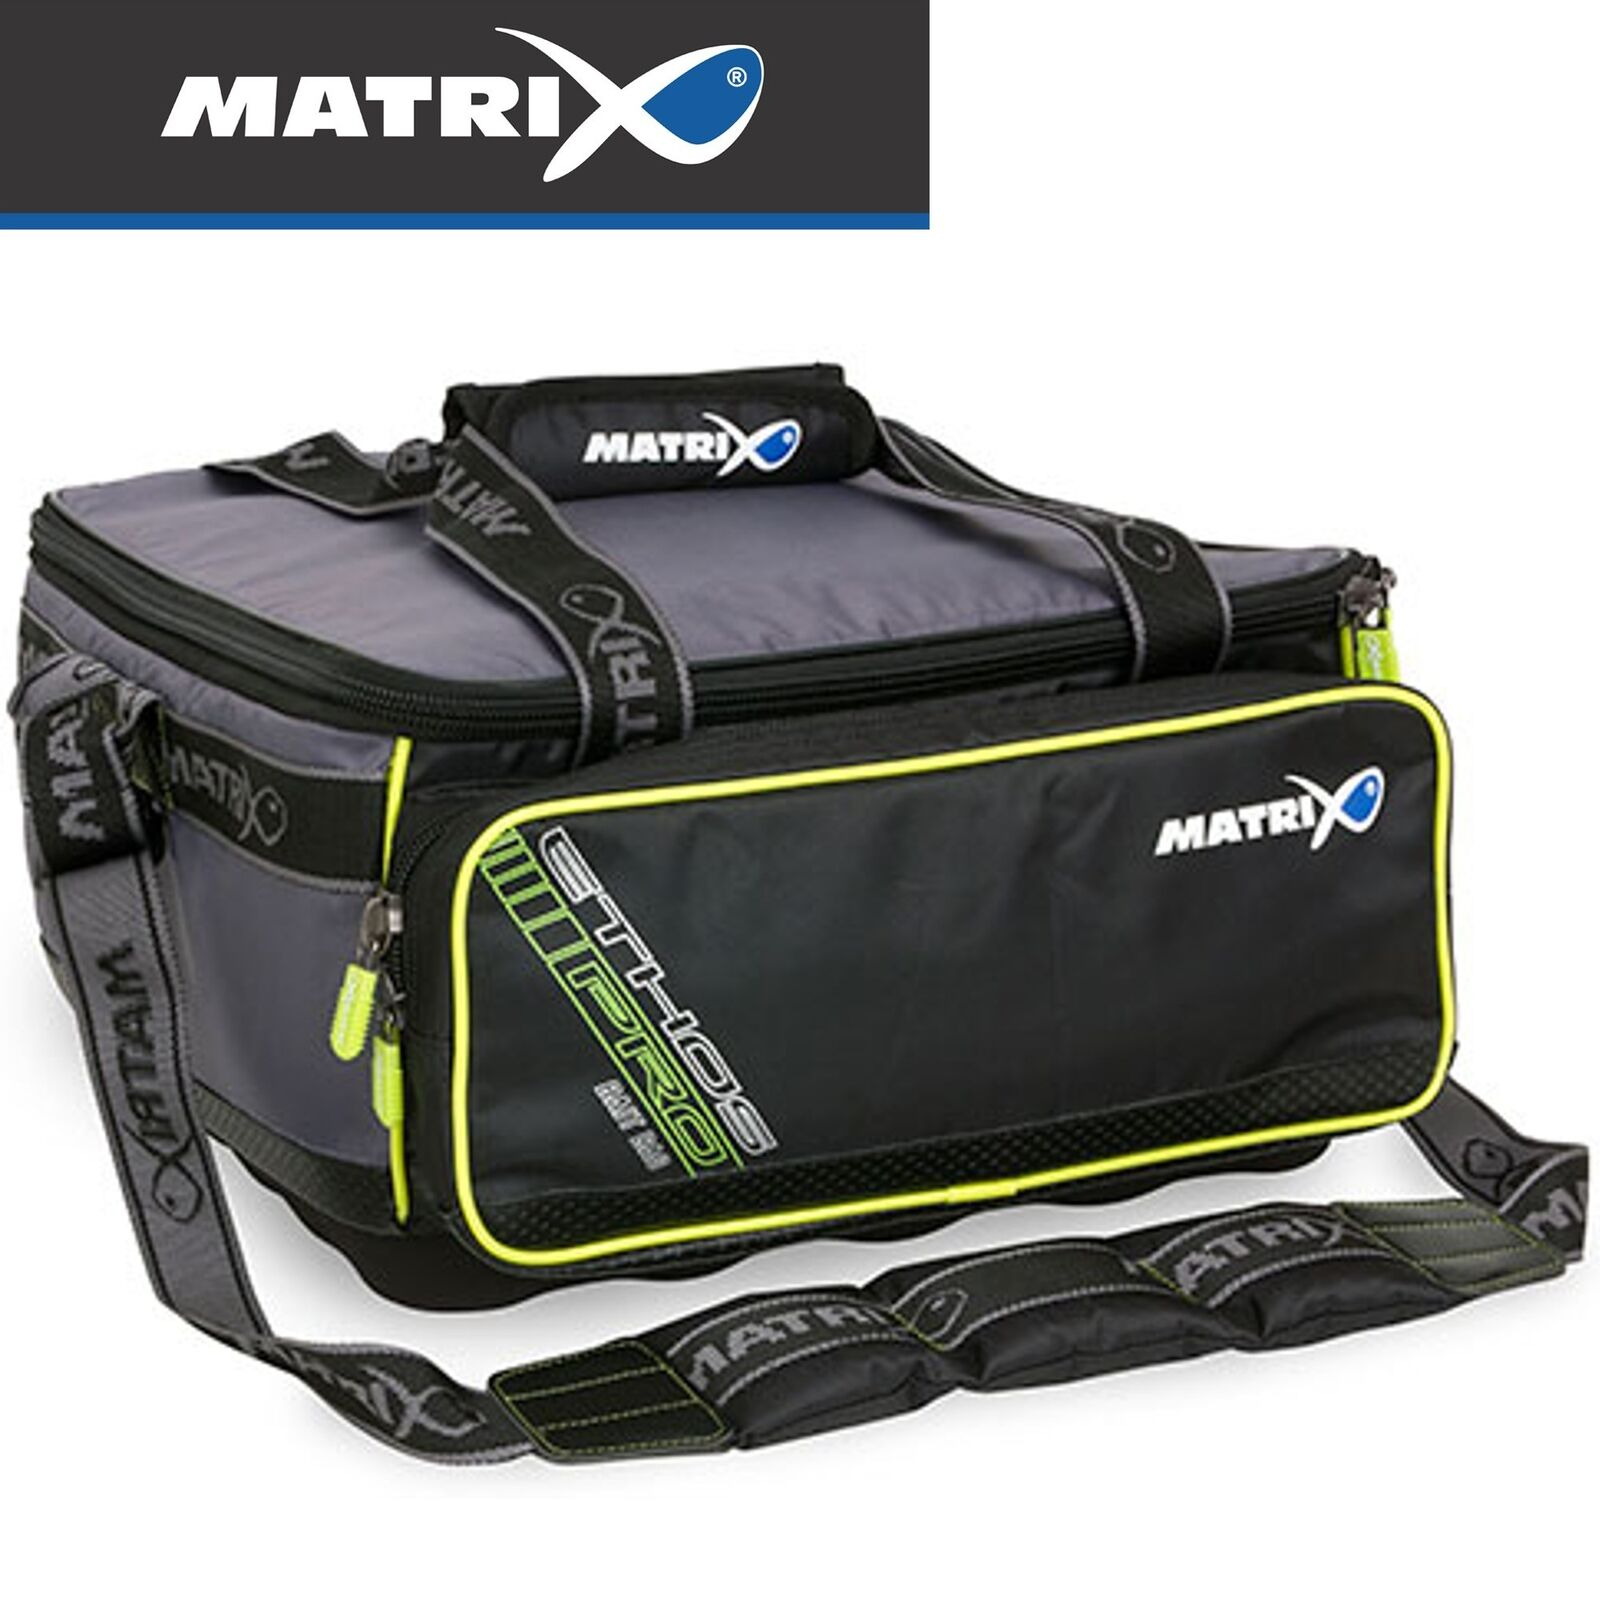 Matrix Pro Ethos Bait bag 40x40x21cm - Ködertasche Feedertasche Tackletasche